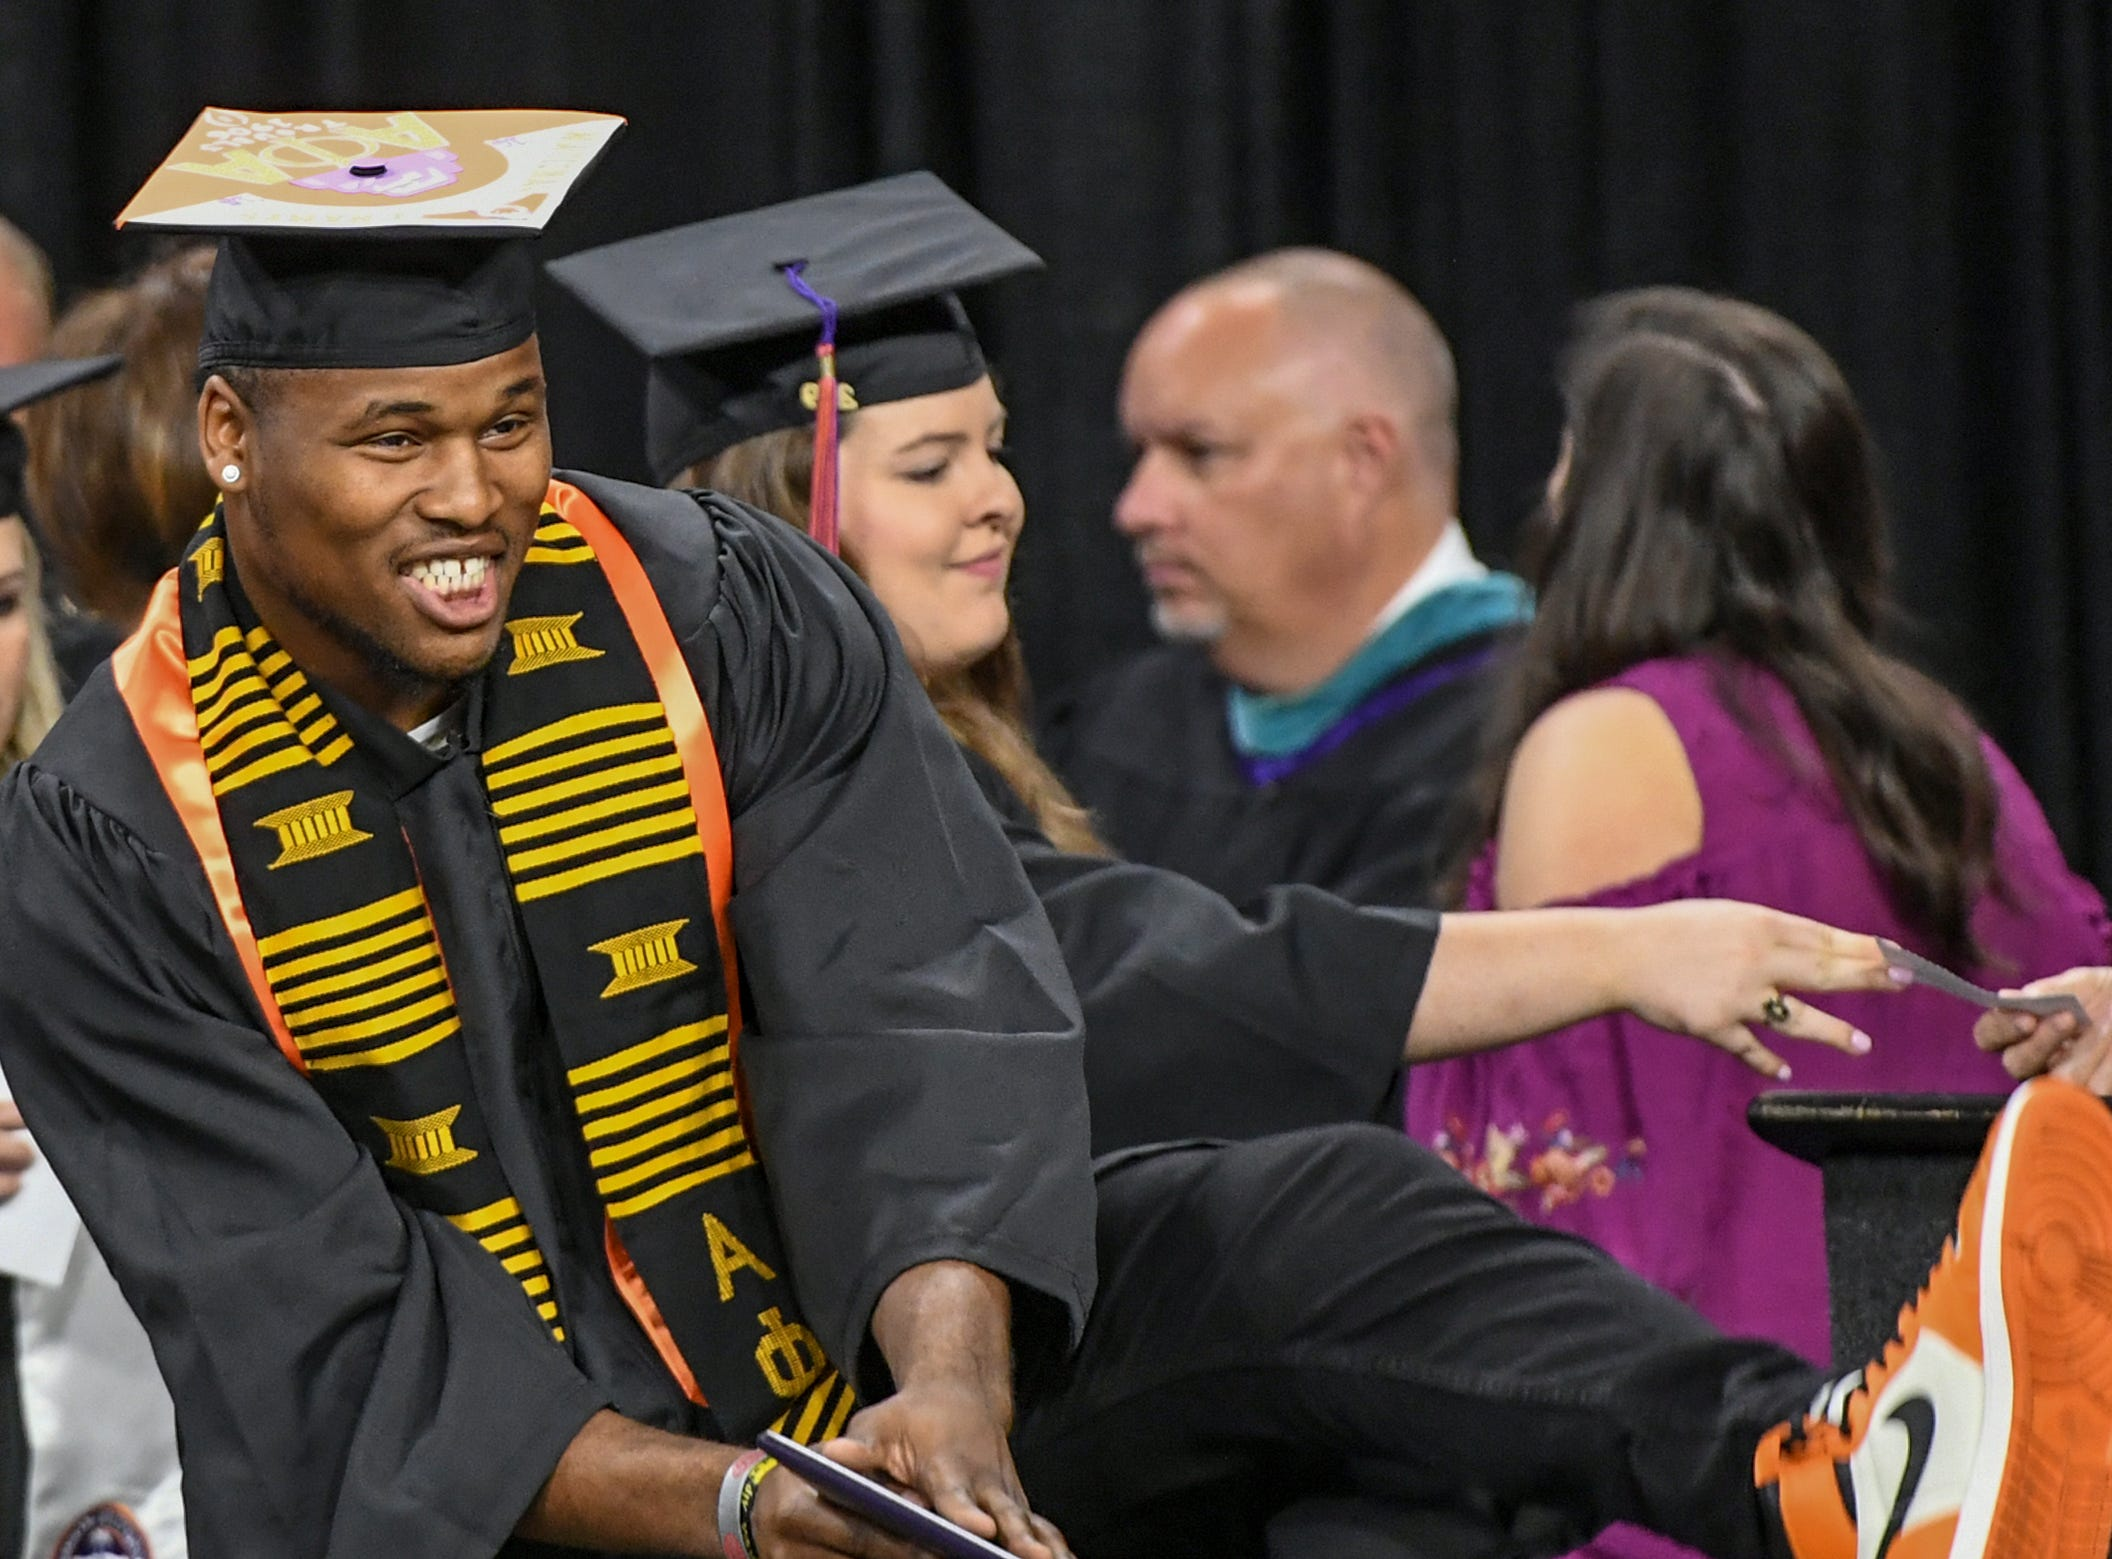 Shaq Smith gets his bachelor of science in parks, recreation, tourism, management during Clemson University commencement ceremonies in Littlejohn Coliseum in Clemson Friday, May 10, 2019.